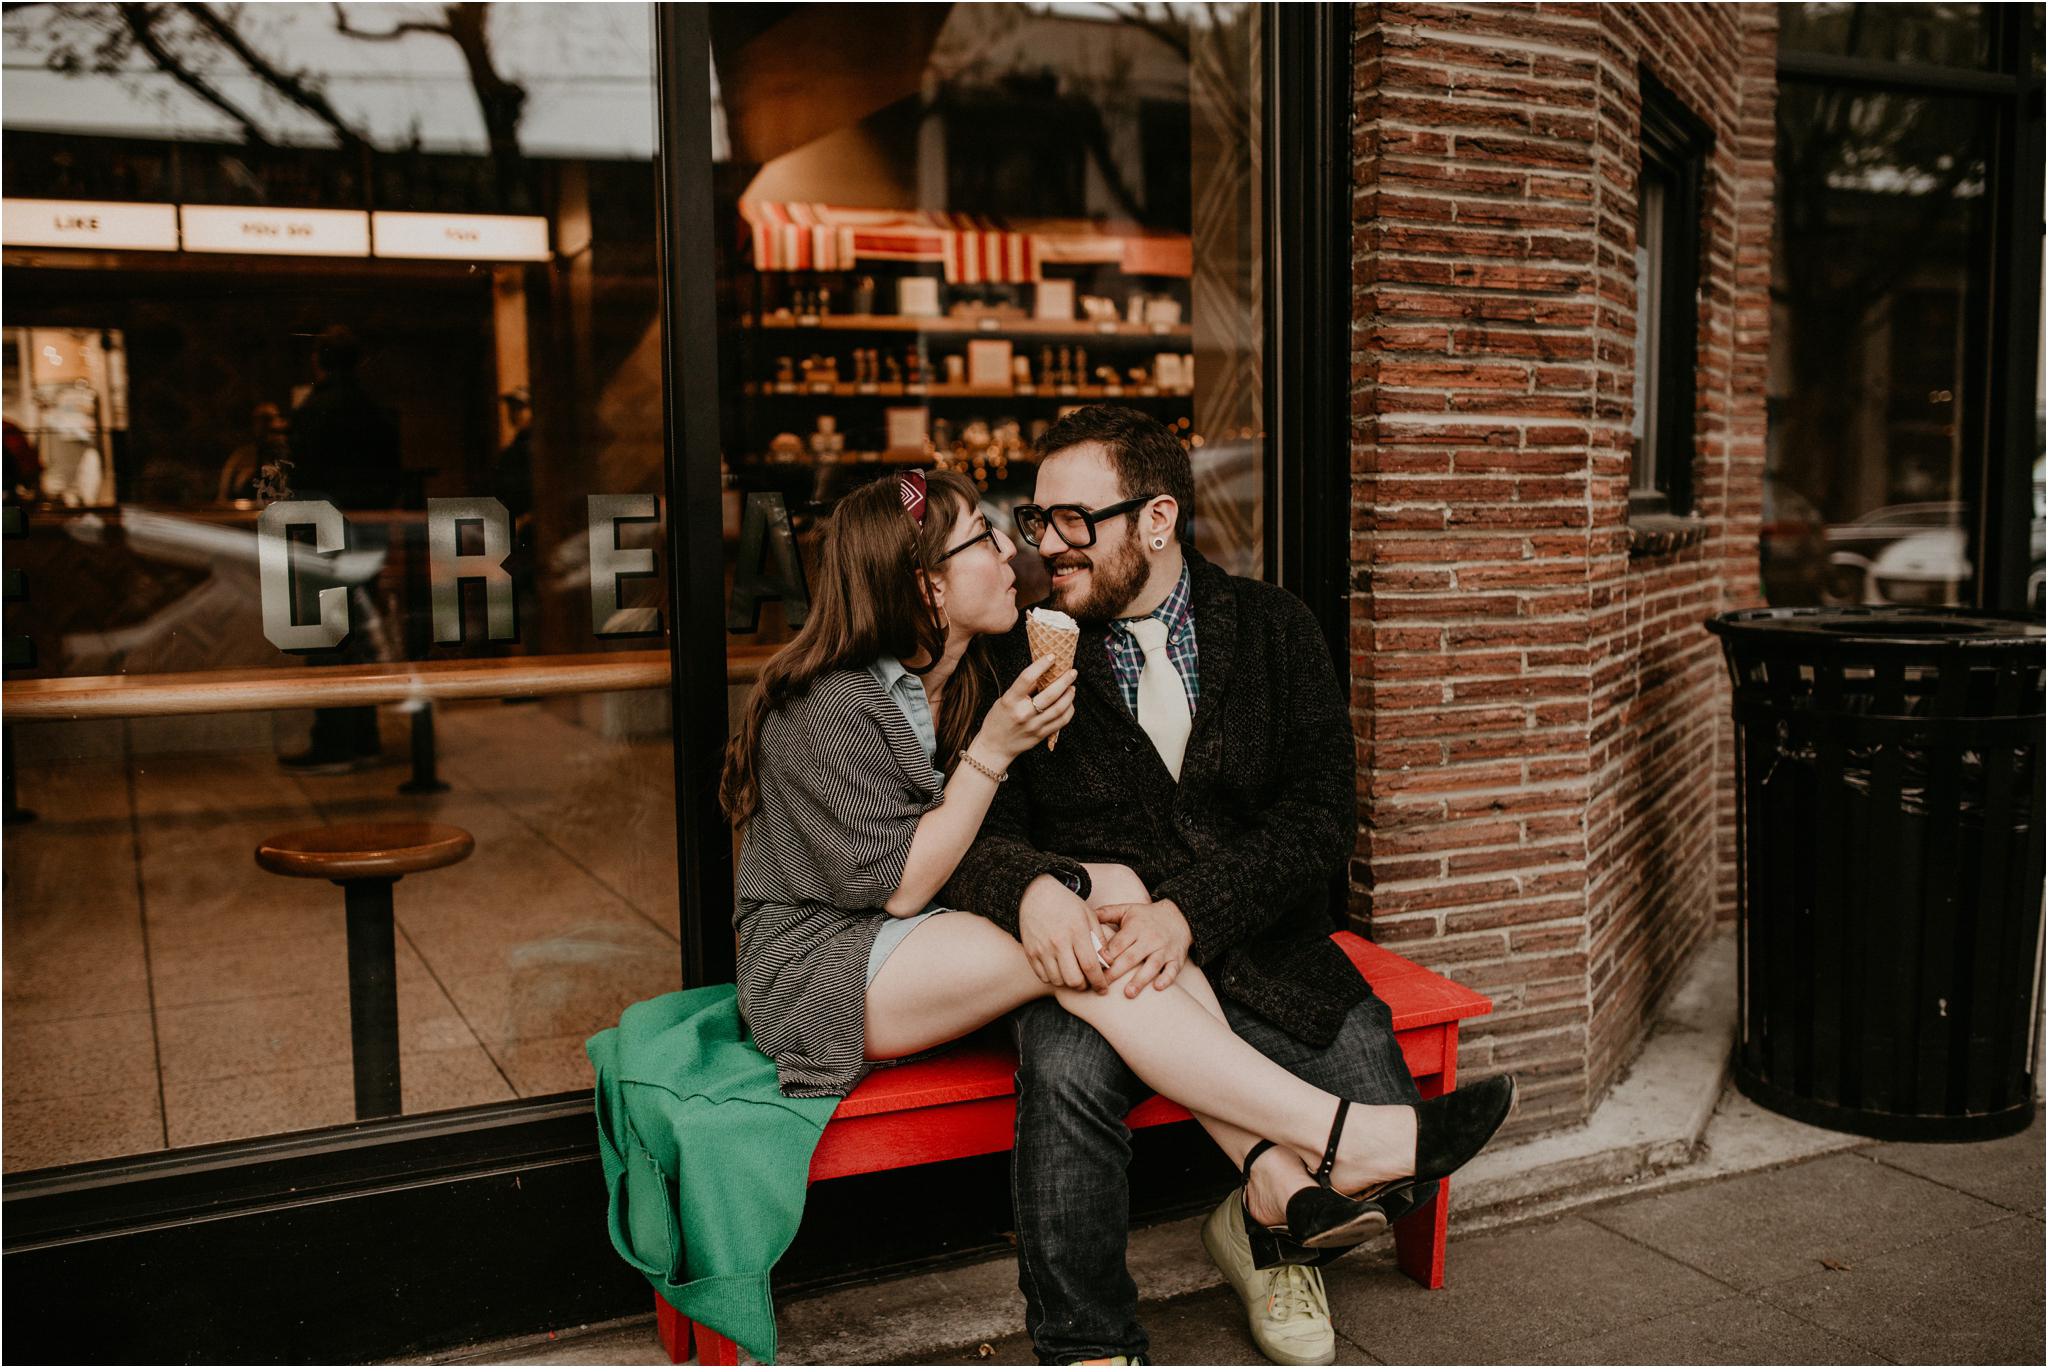 jaimie-and-jake-ballard-seattle-engagement-session-027.jpg